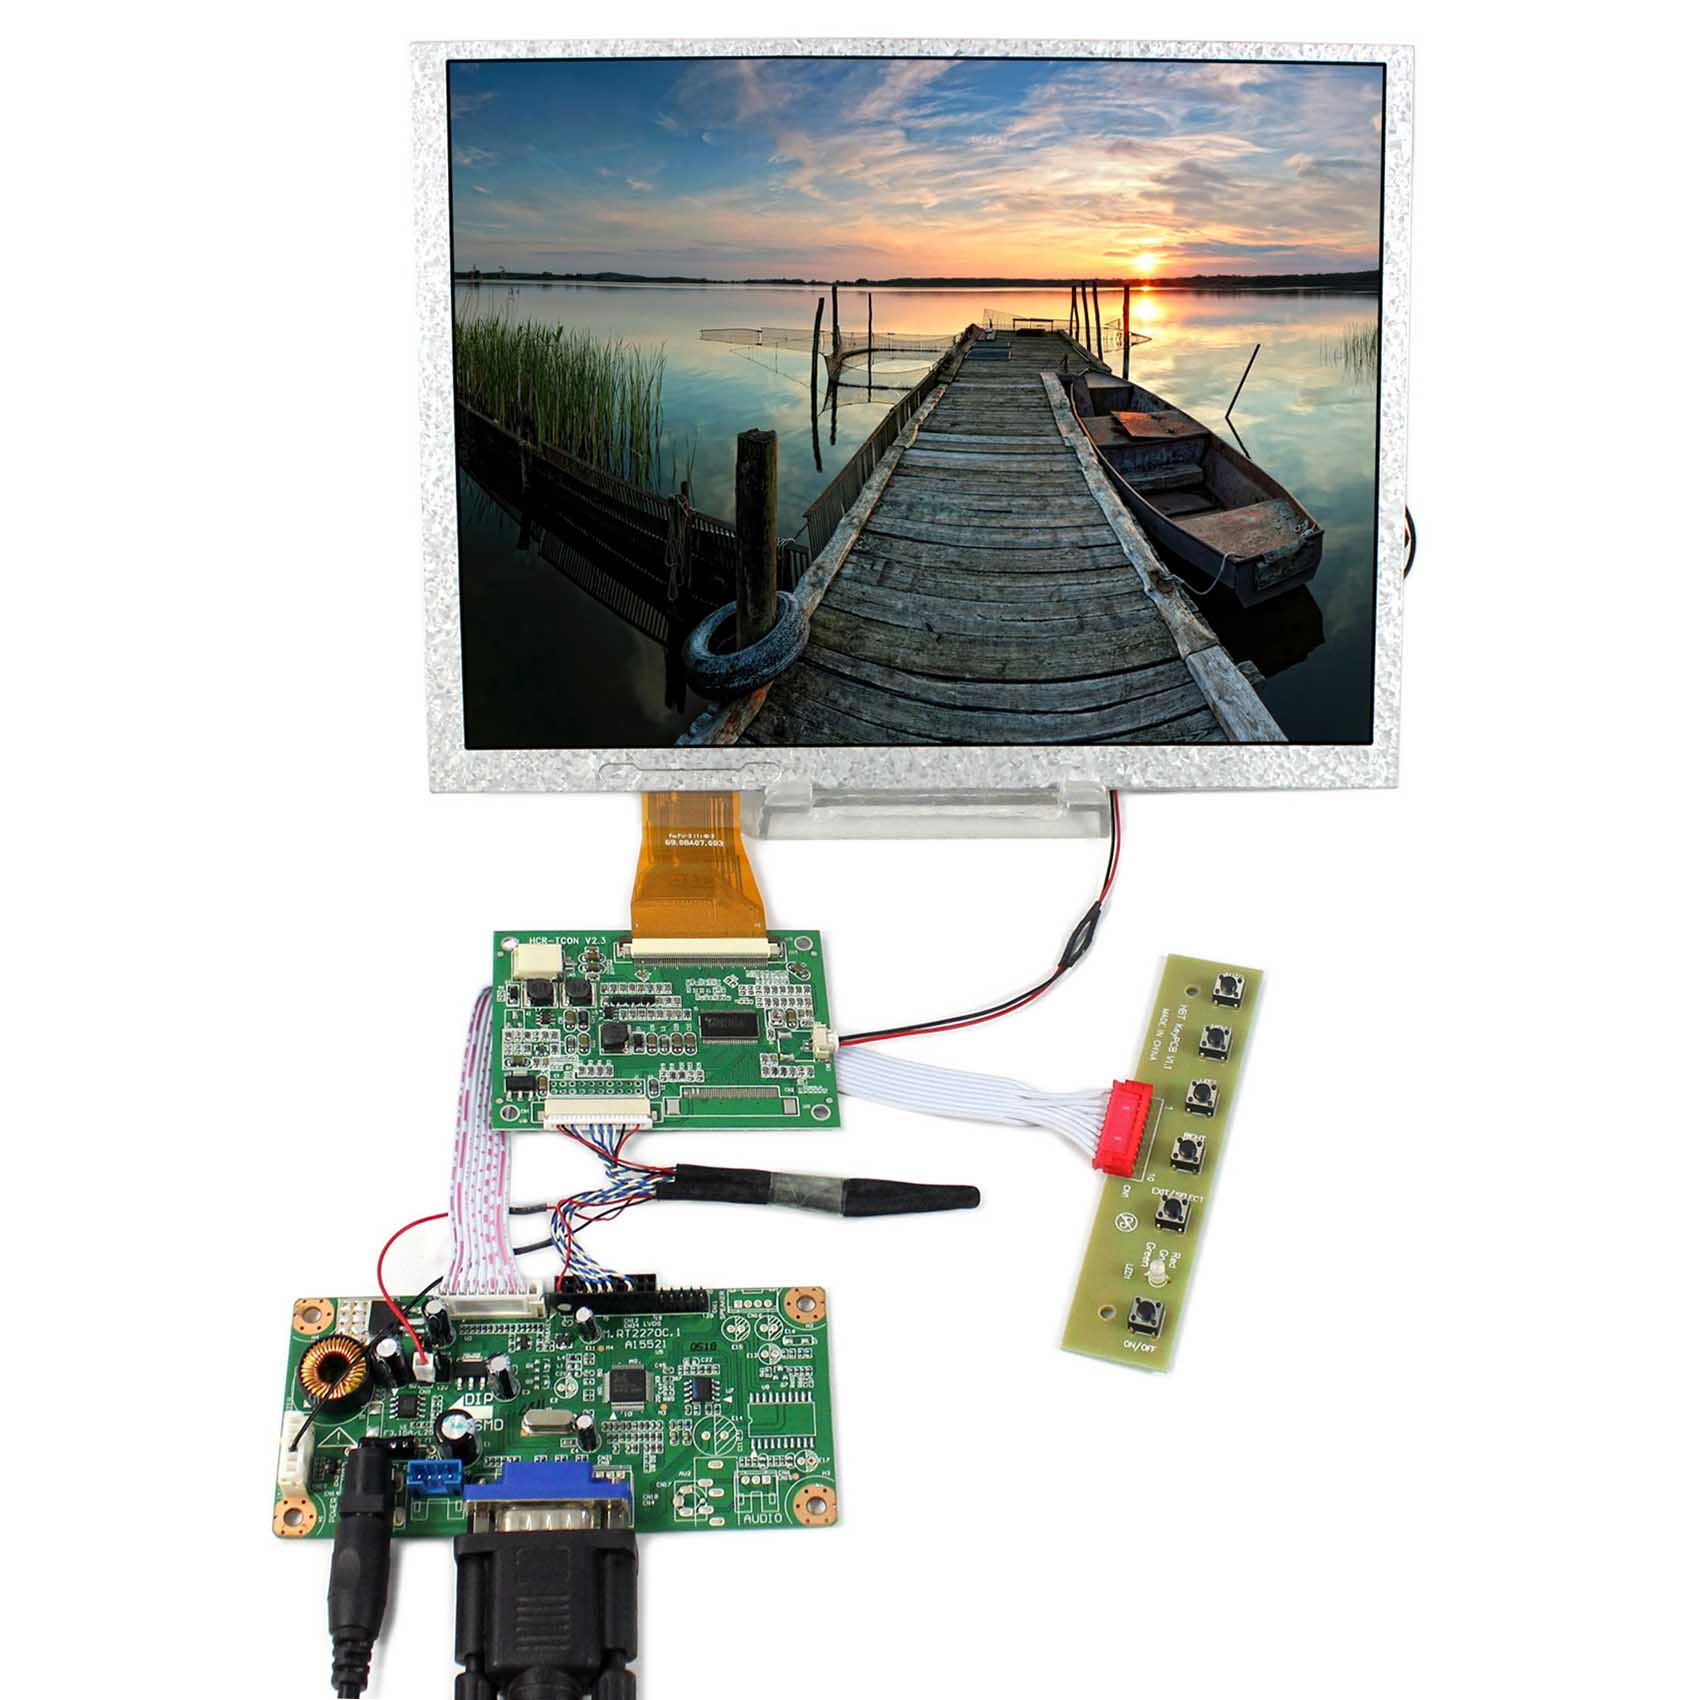 10.4inch A104SN03 800x600 TTL LCD With LVDS to TTL Board With VGA LCD Controller Board RT2270C-A vm70a vga to lvds lcd controller board for mt215dw01 v2 21 5 inch 1920x1080 2ccfl lvds video board free shipping